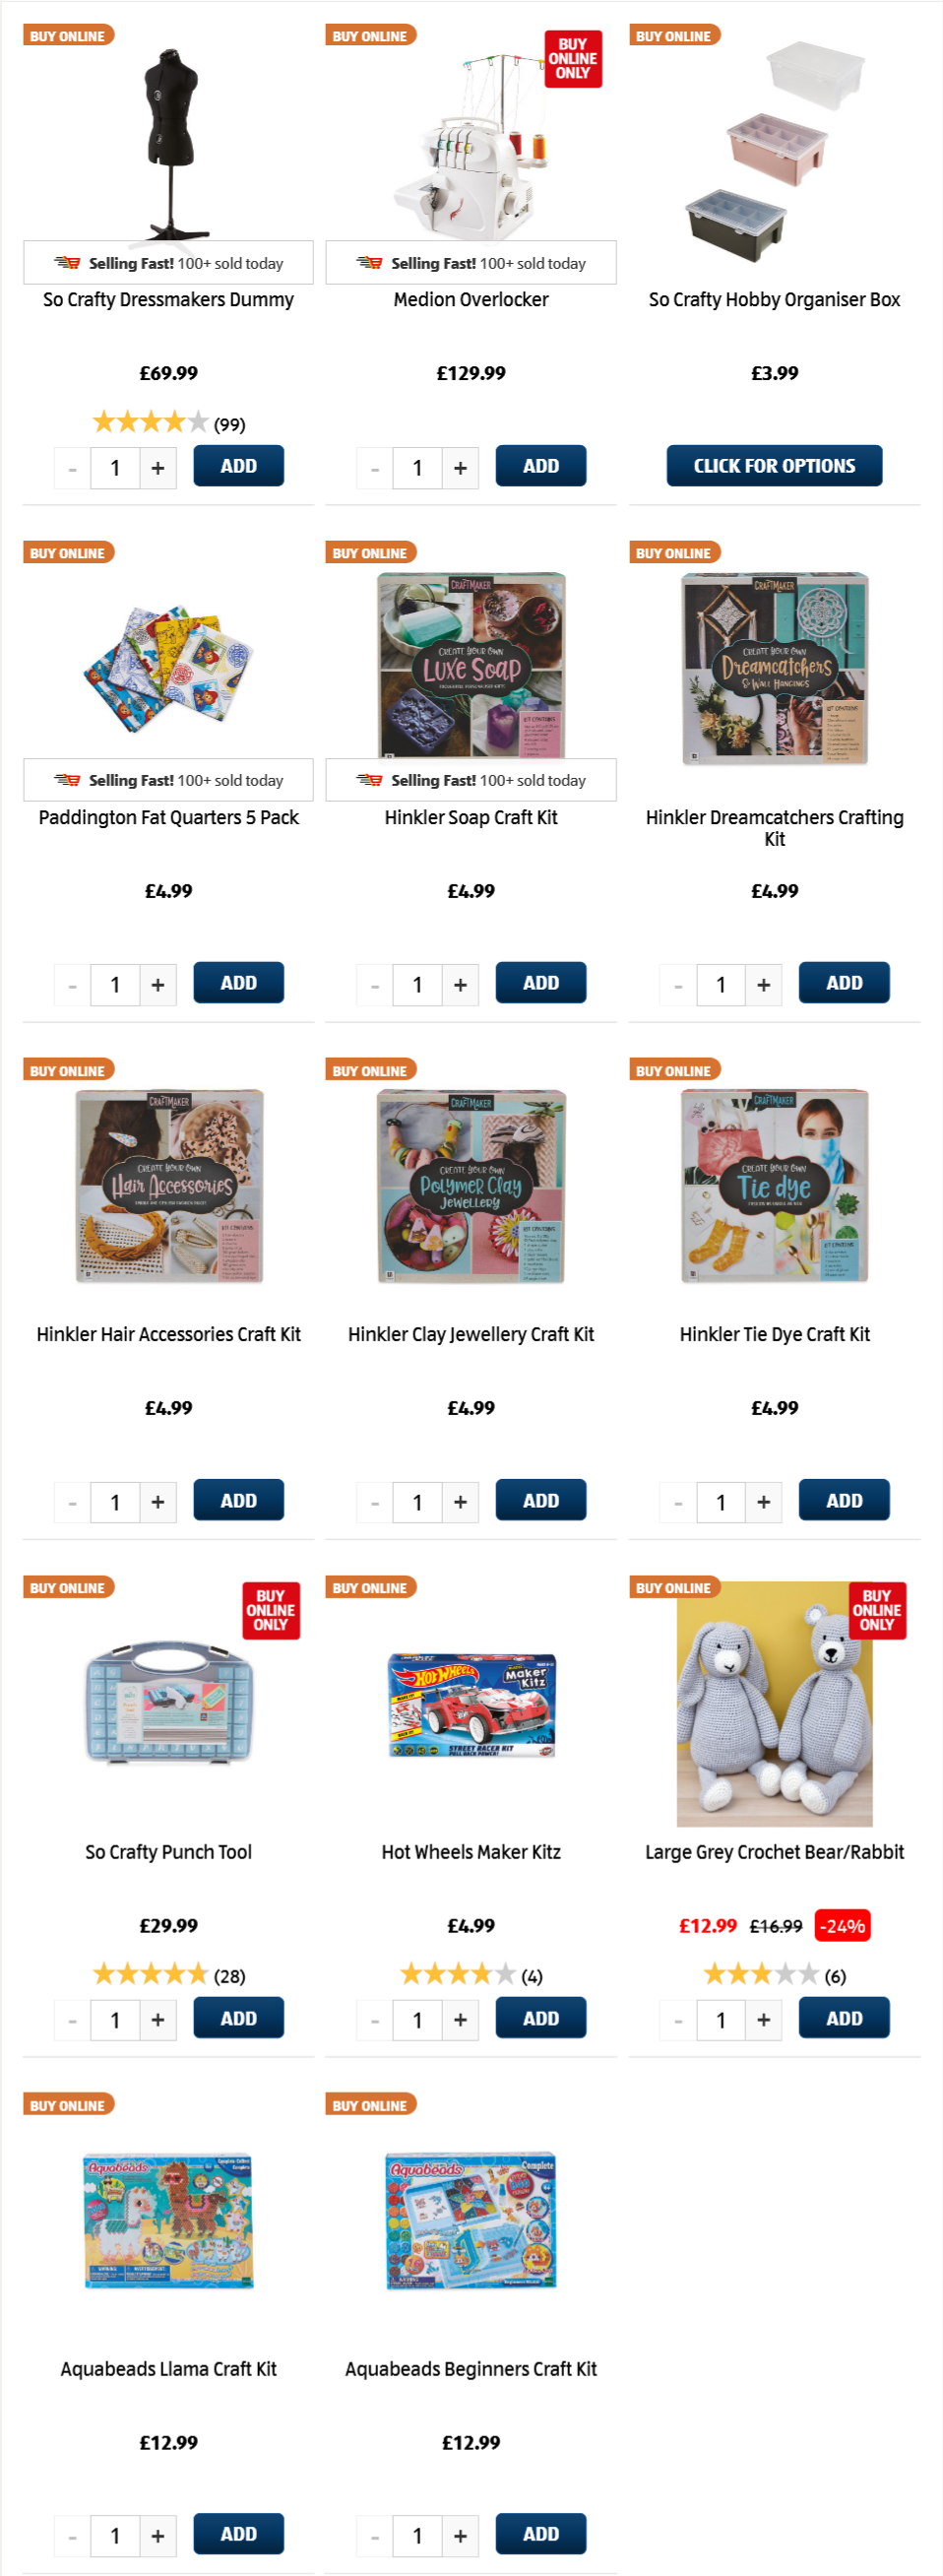 ALDI Thursday Offers 11th February 2021 ALDI Hobbies & Crafts